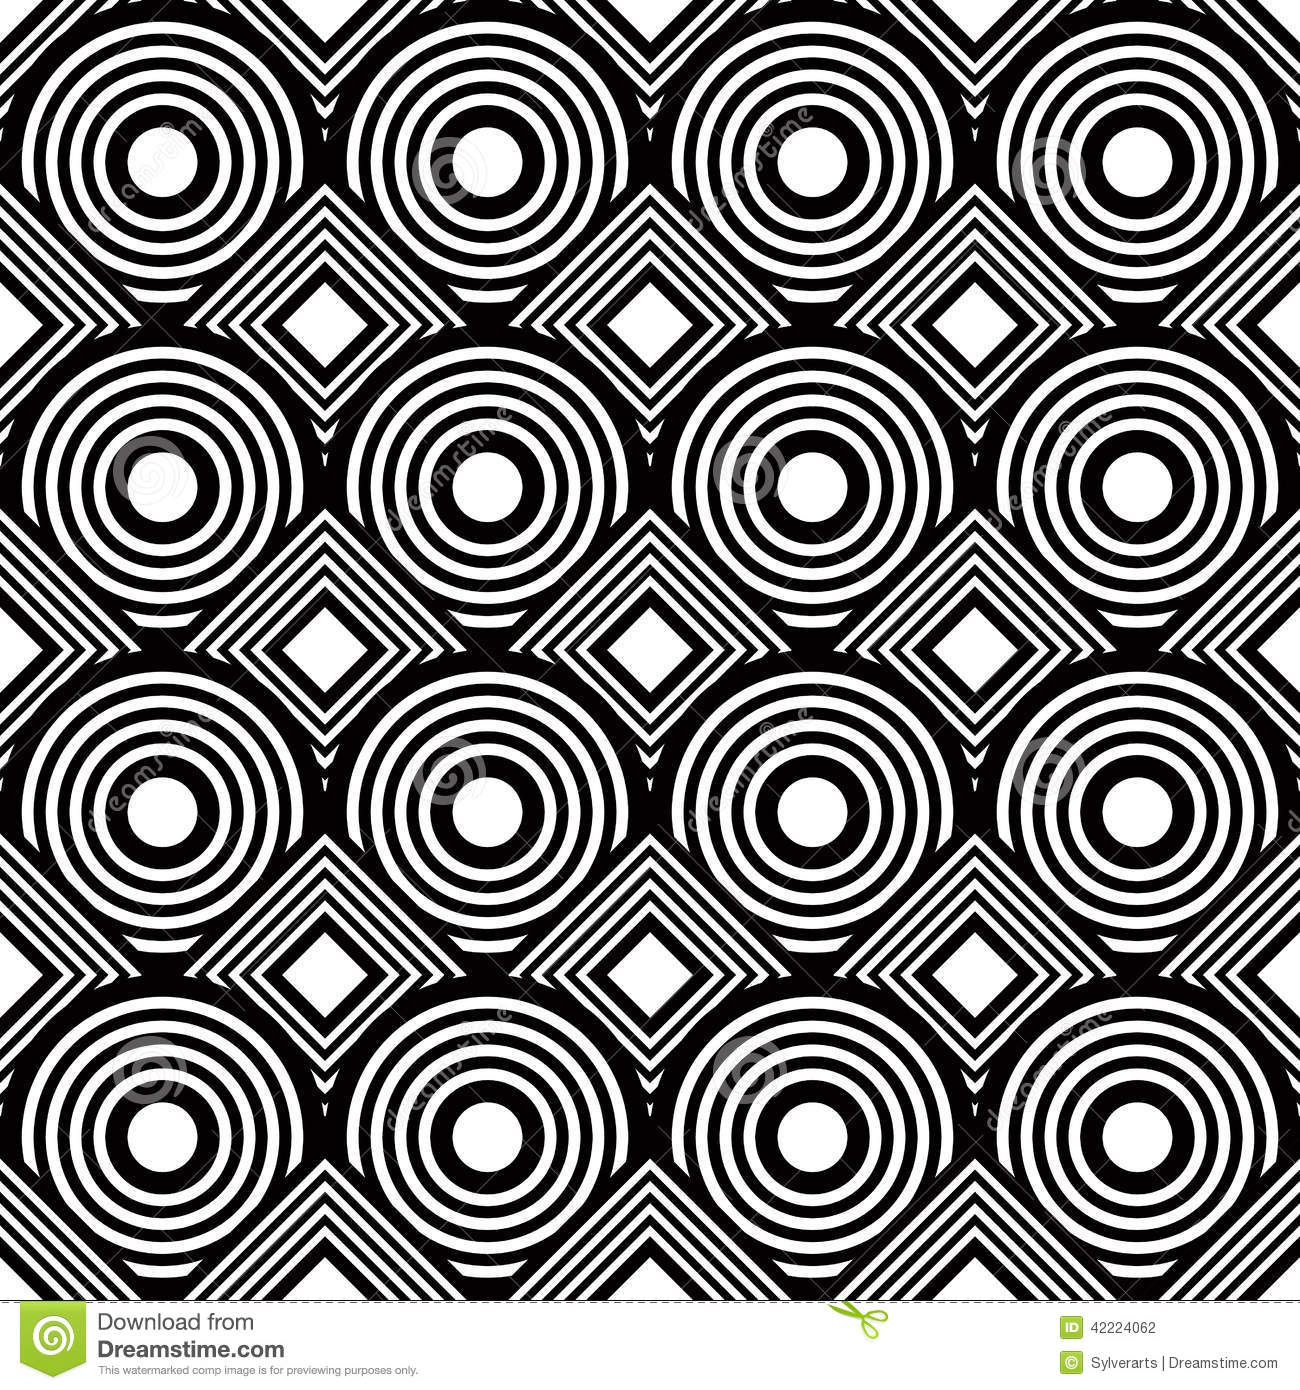 Seamless Geometric Background, Simple Black And White ...